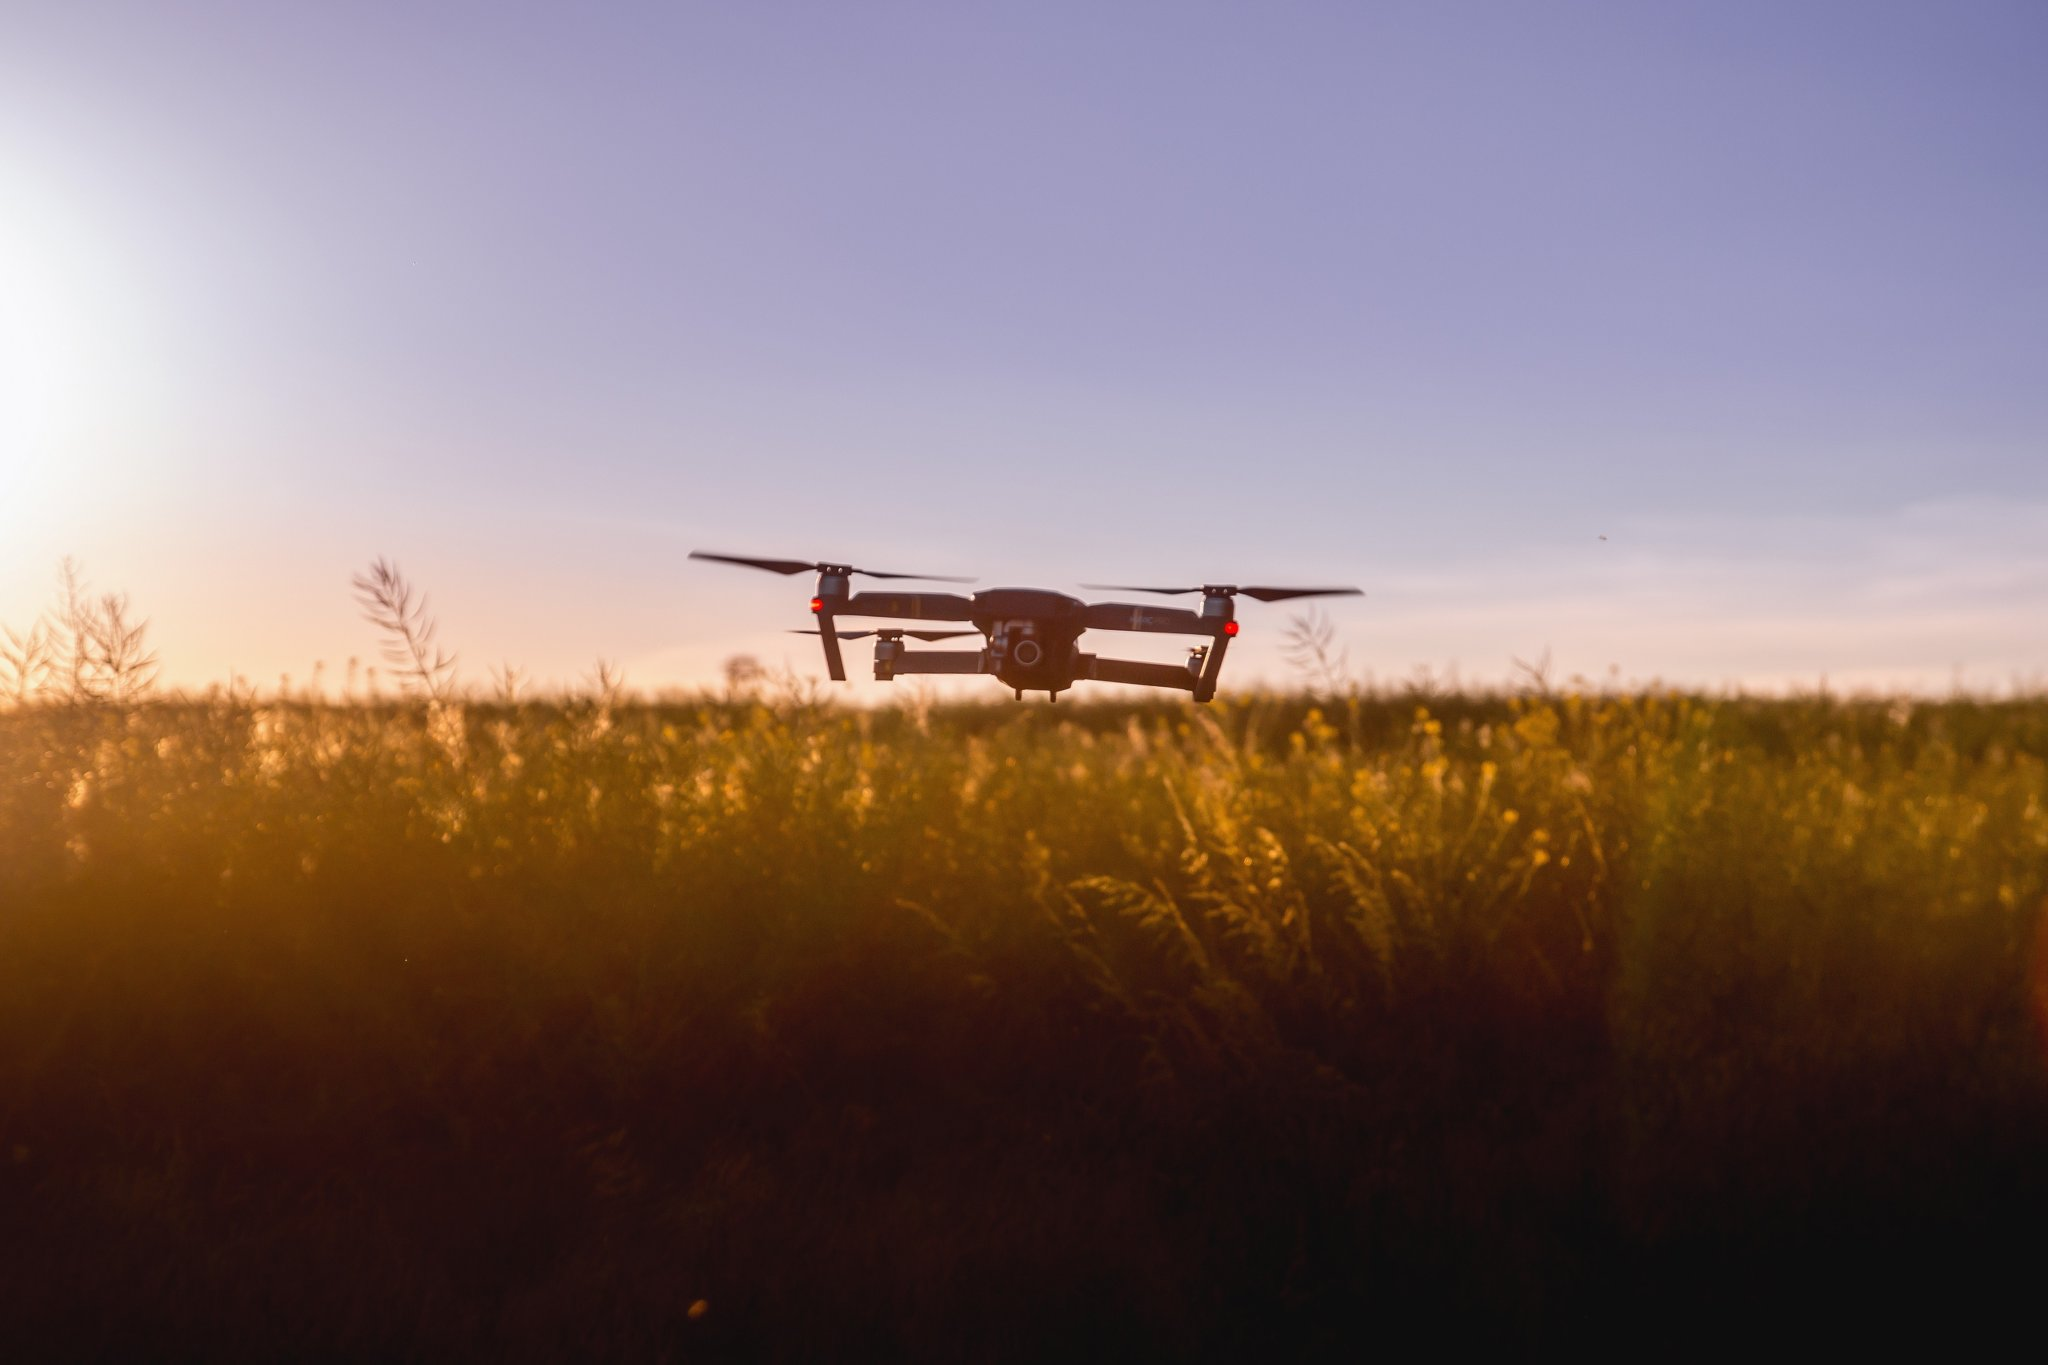 Drone flying above crops